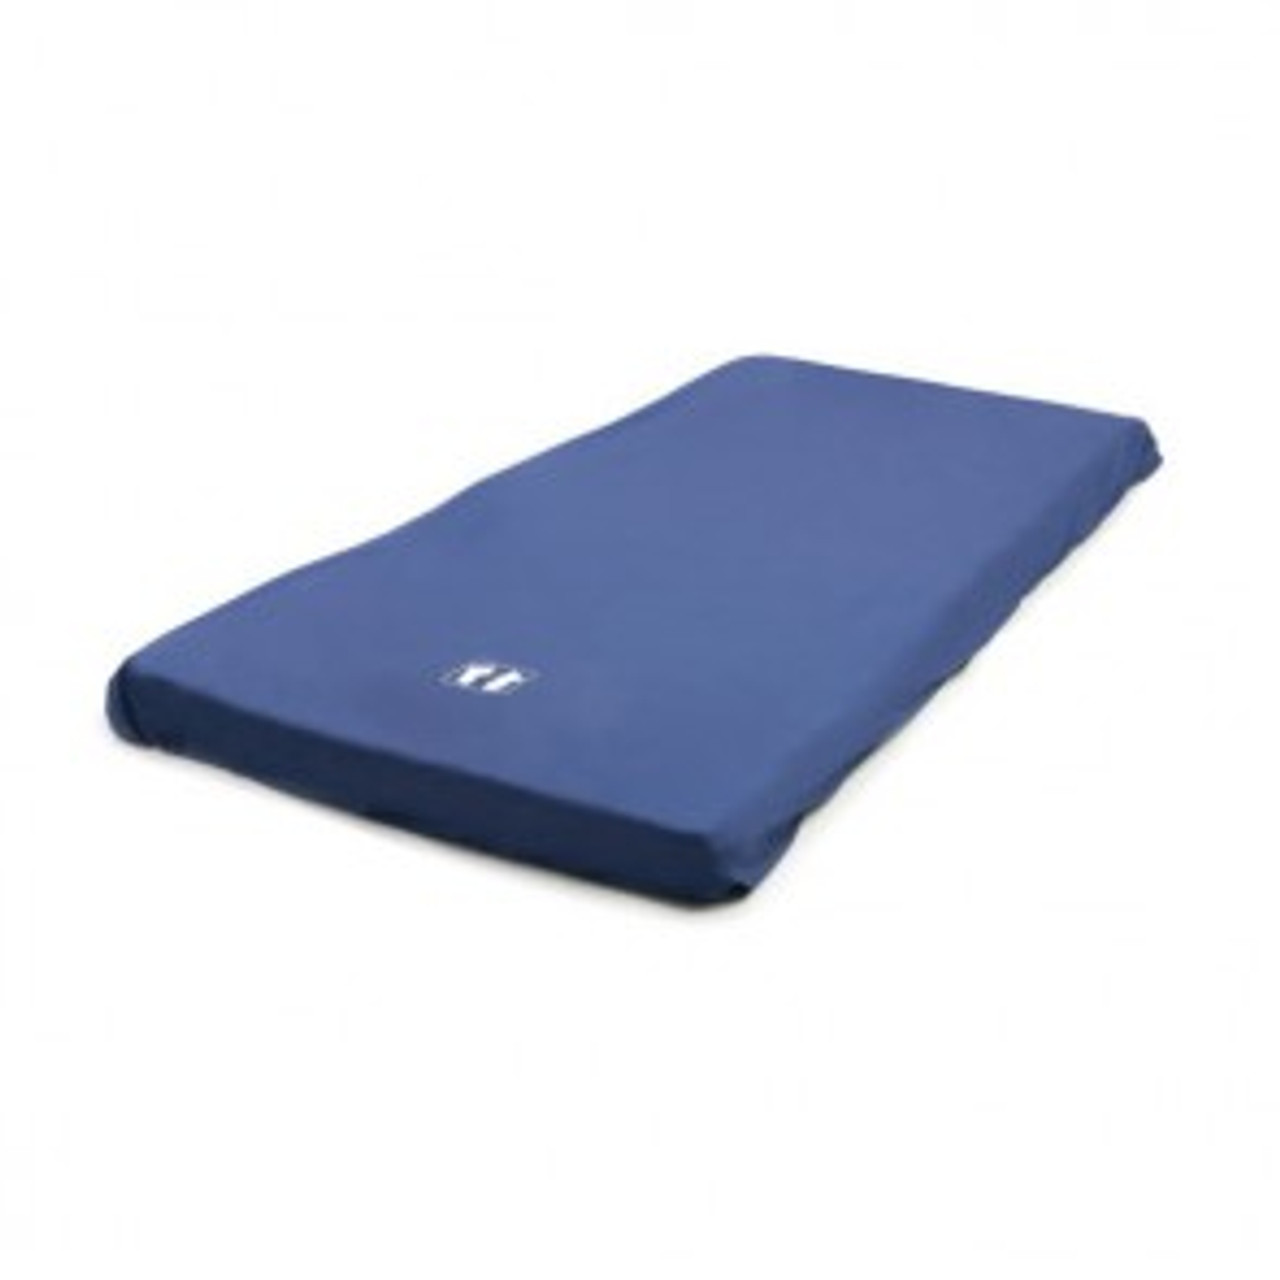 Reusable Mattress Overlay System Cover